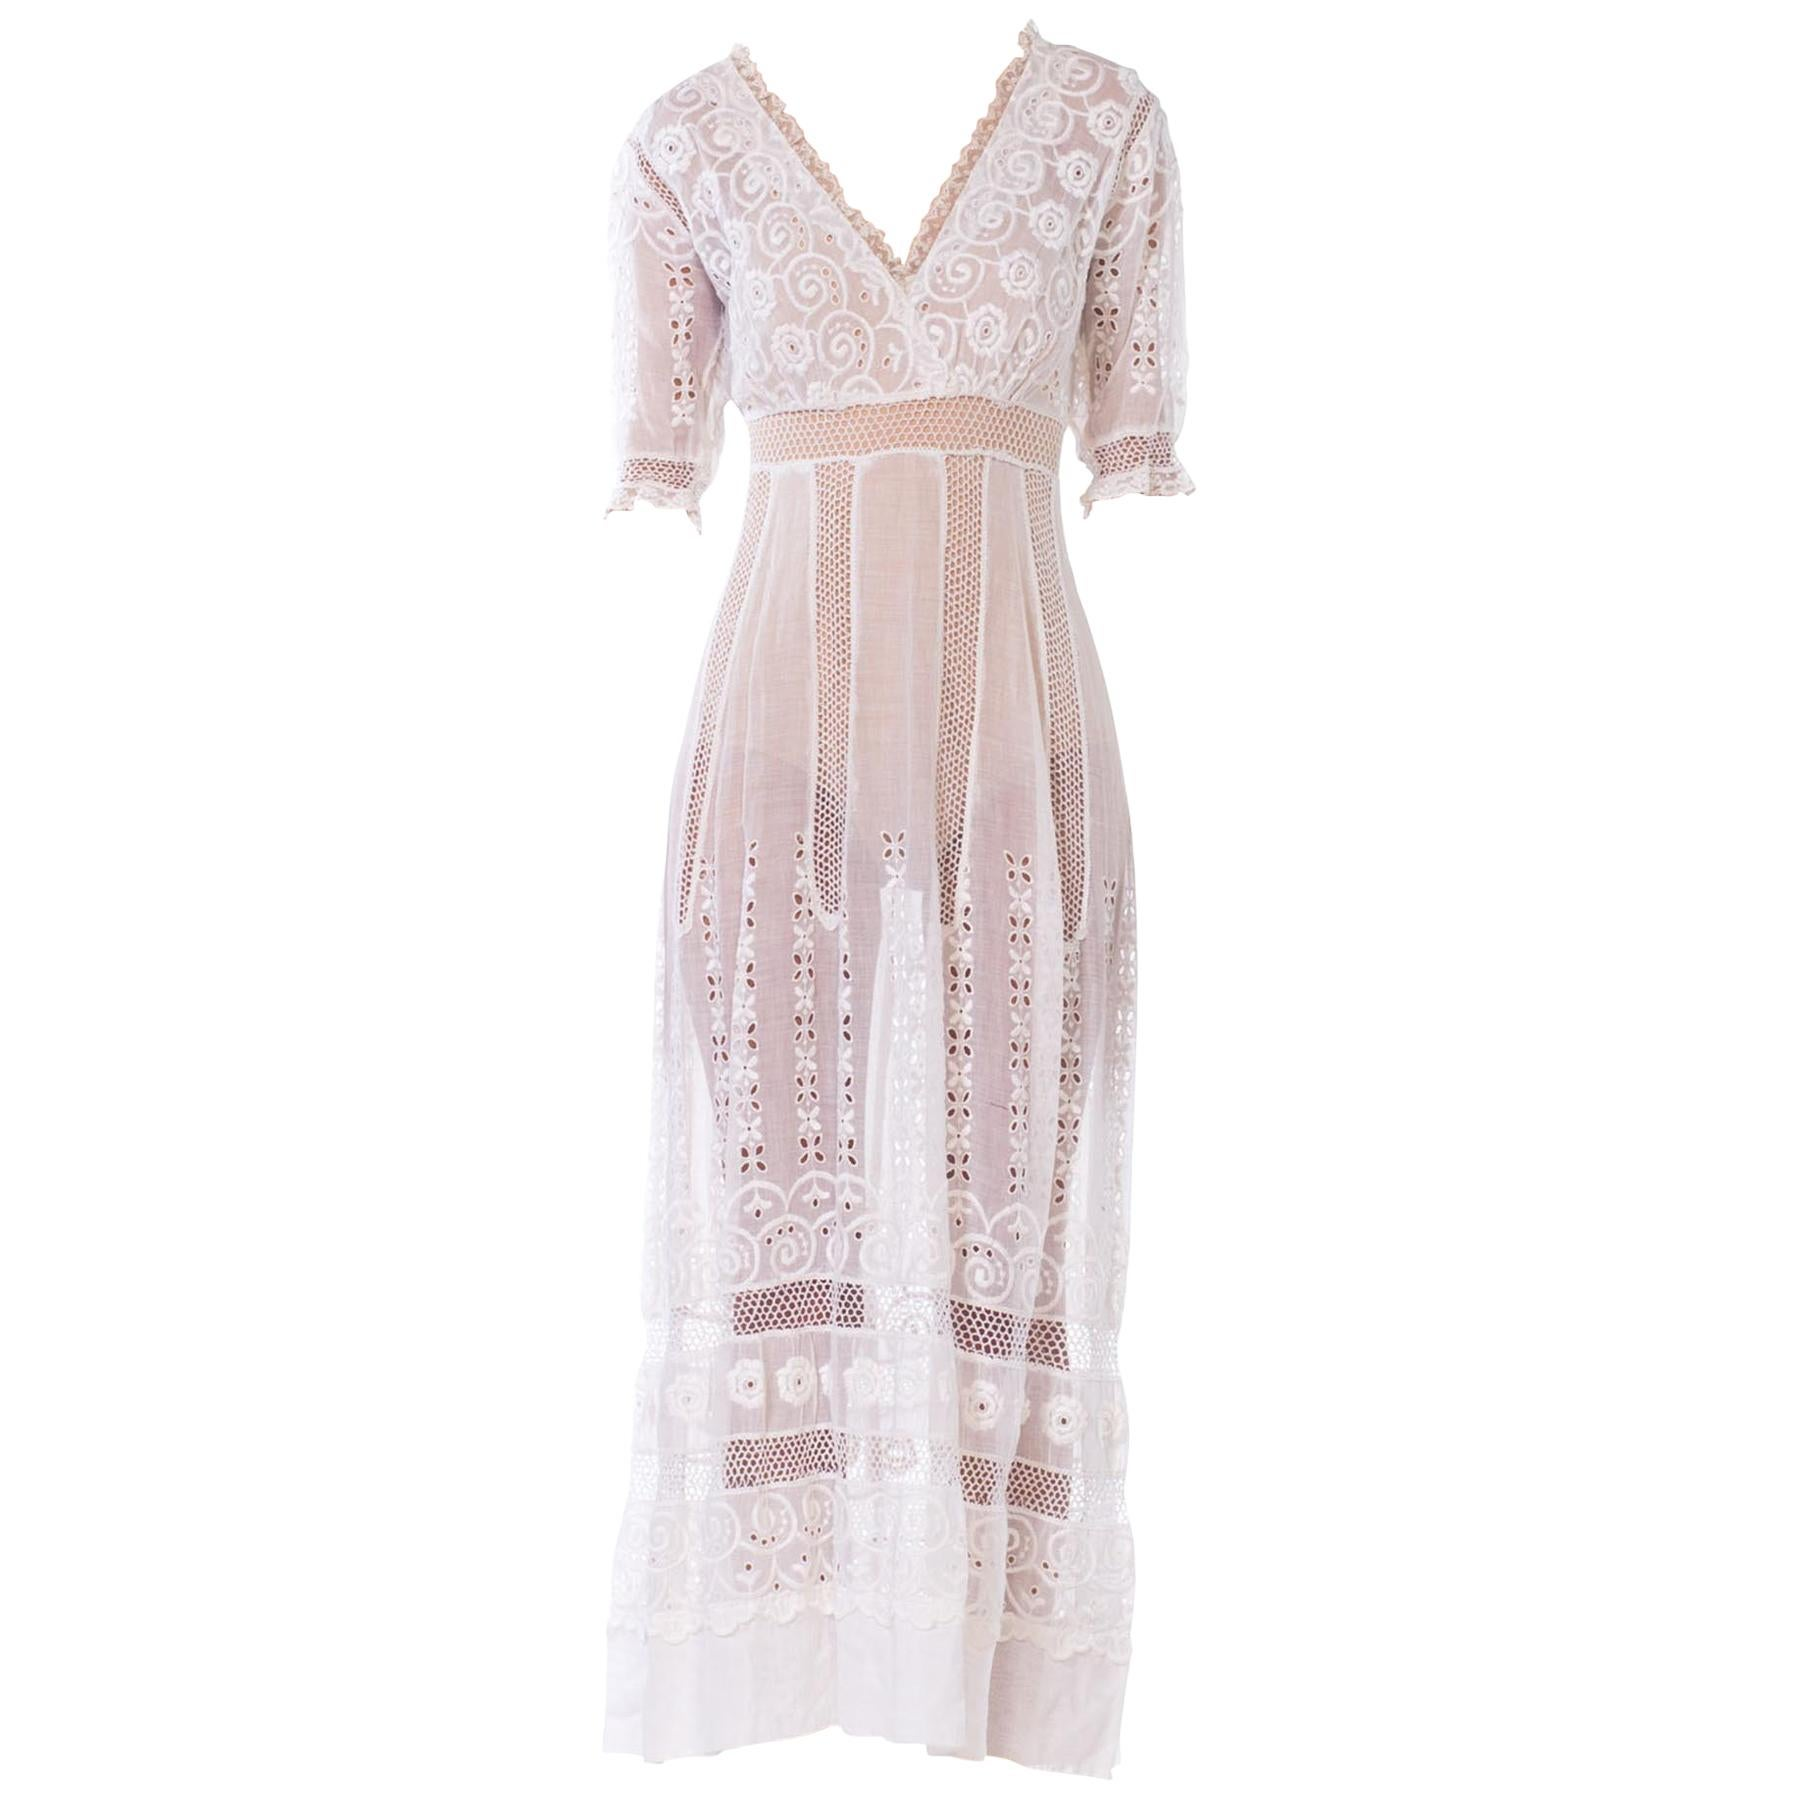 f3d5e0a063ec Edwardian Embroidered Organic White Cotton and Lace Tea Dress For Sale at  1stdibs